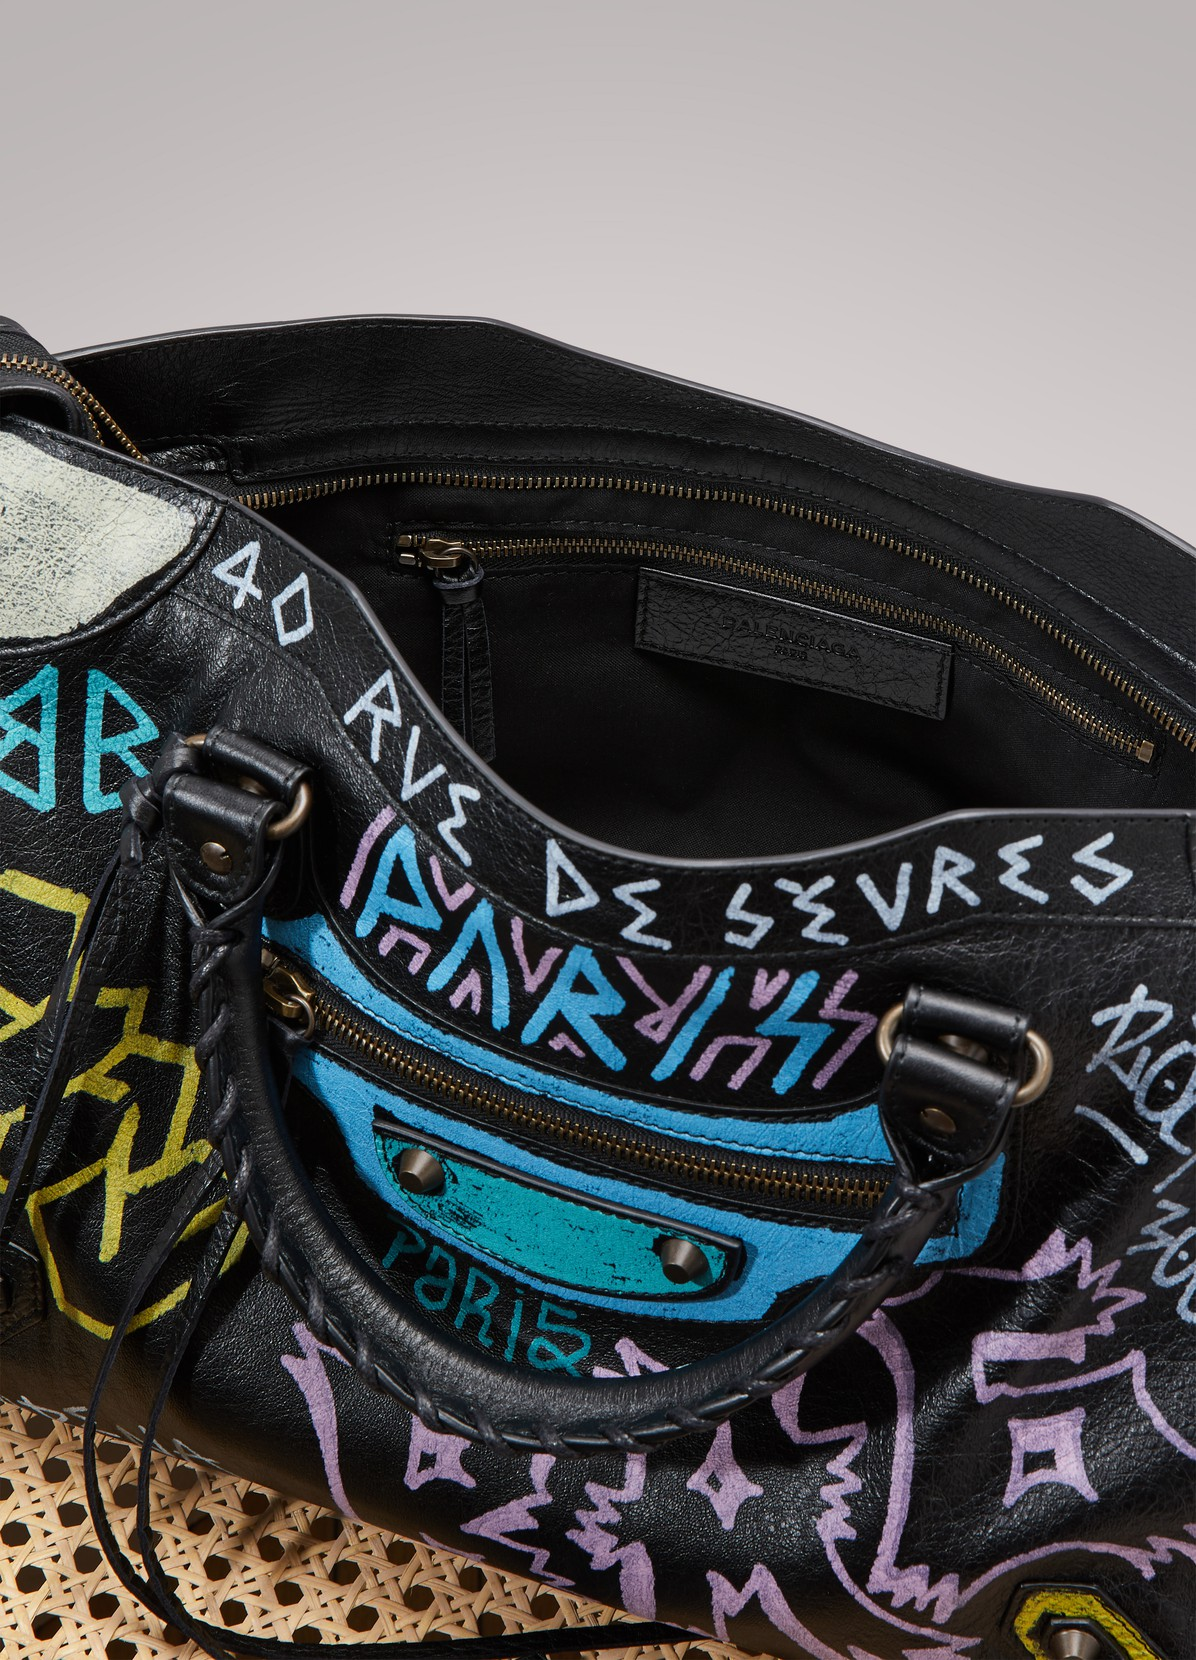 Balenciaga Graffiti City Bag